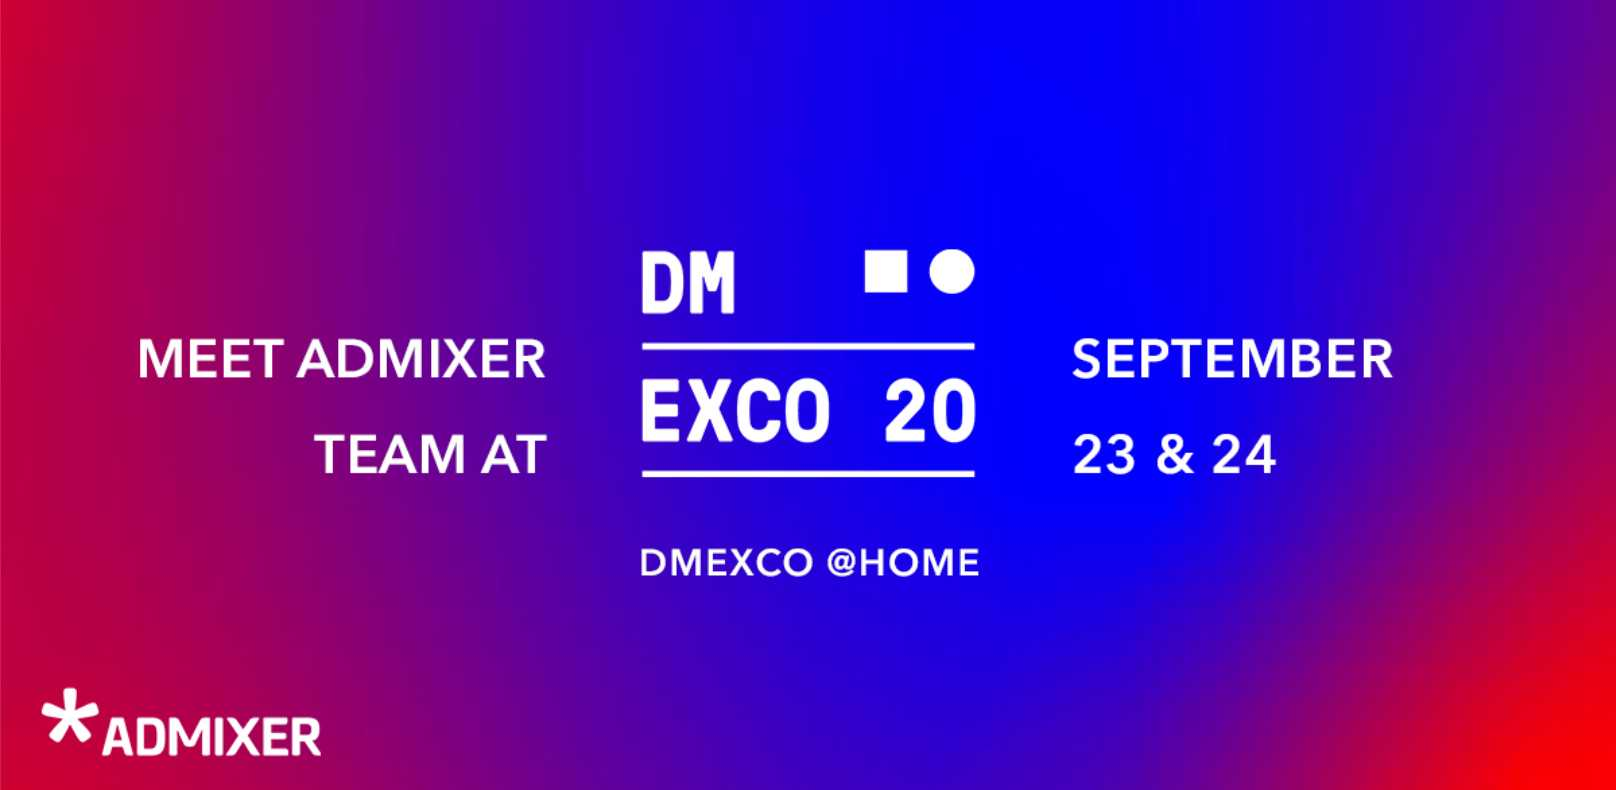 Admixer at DMEXCO @home 2020